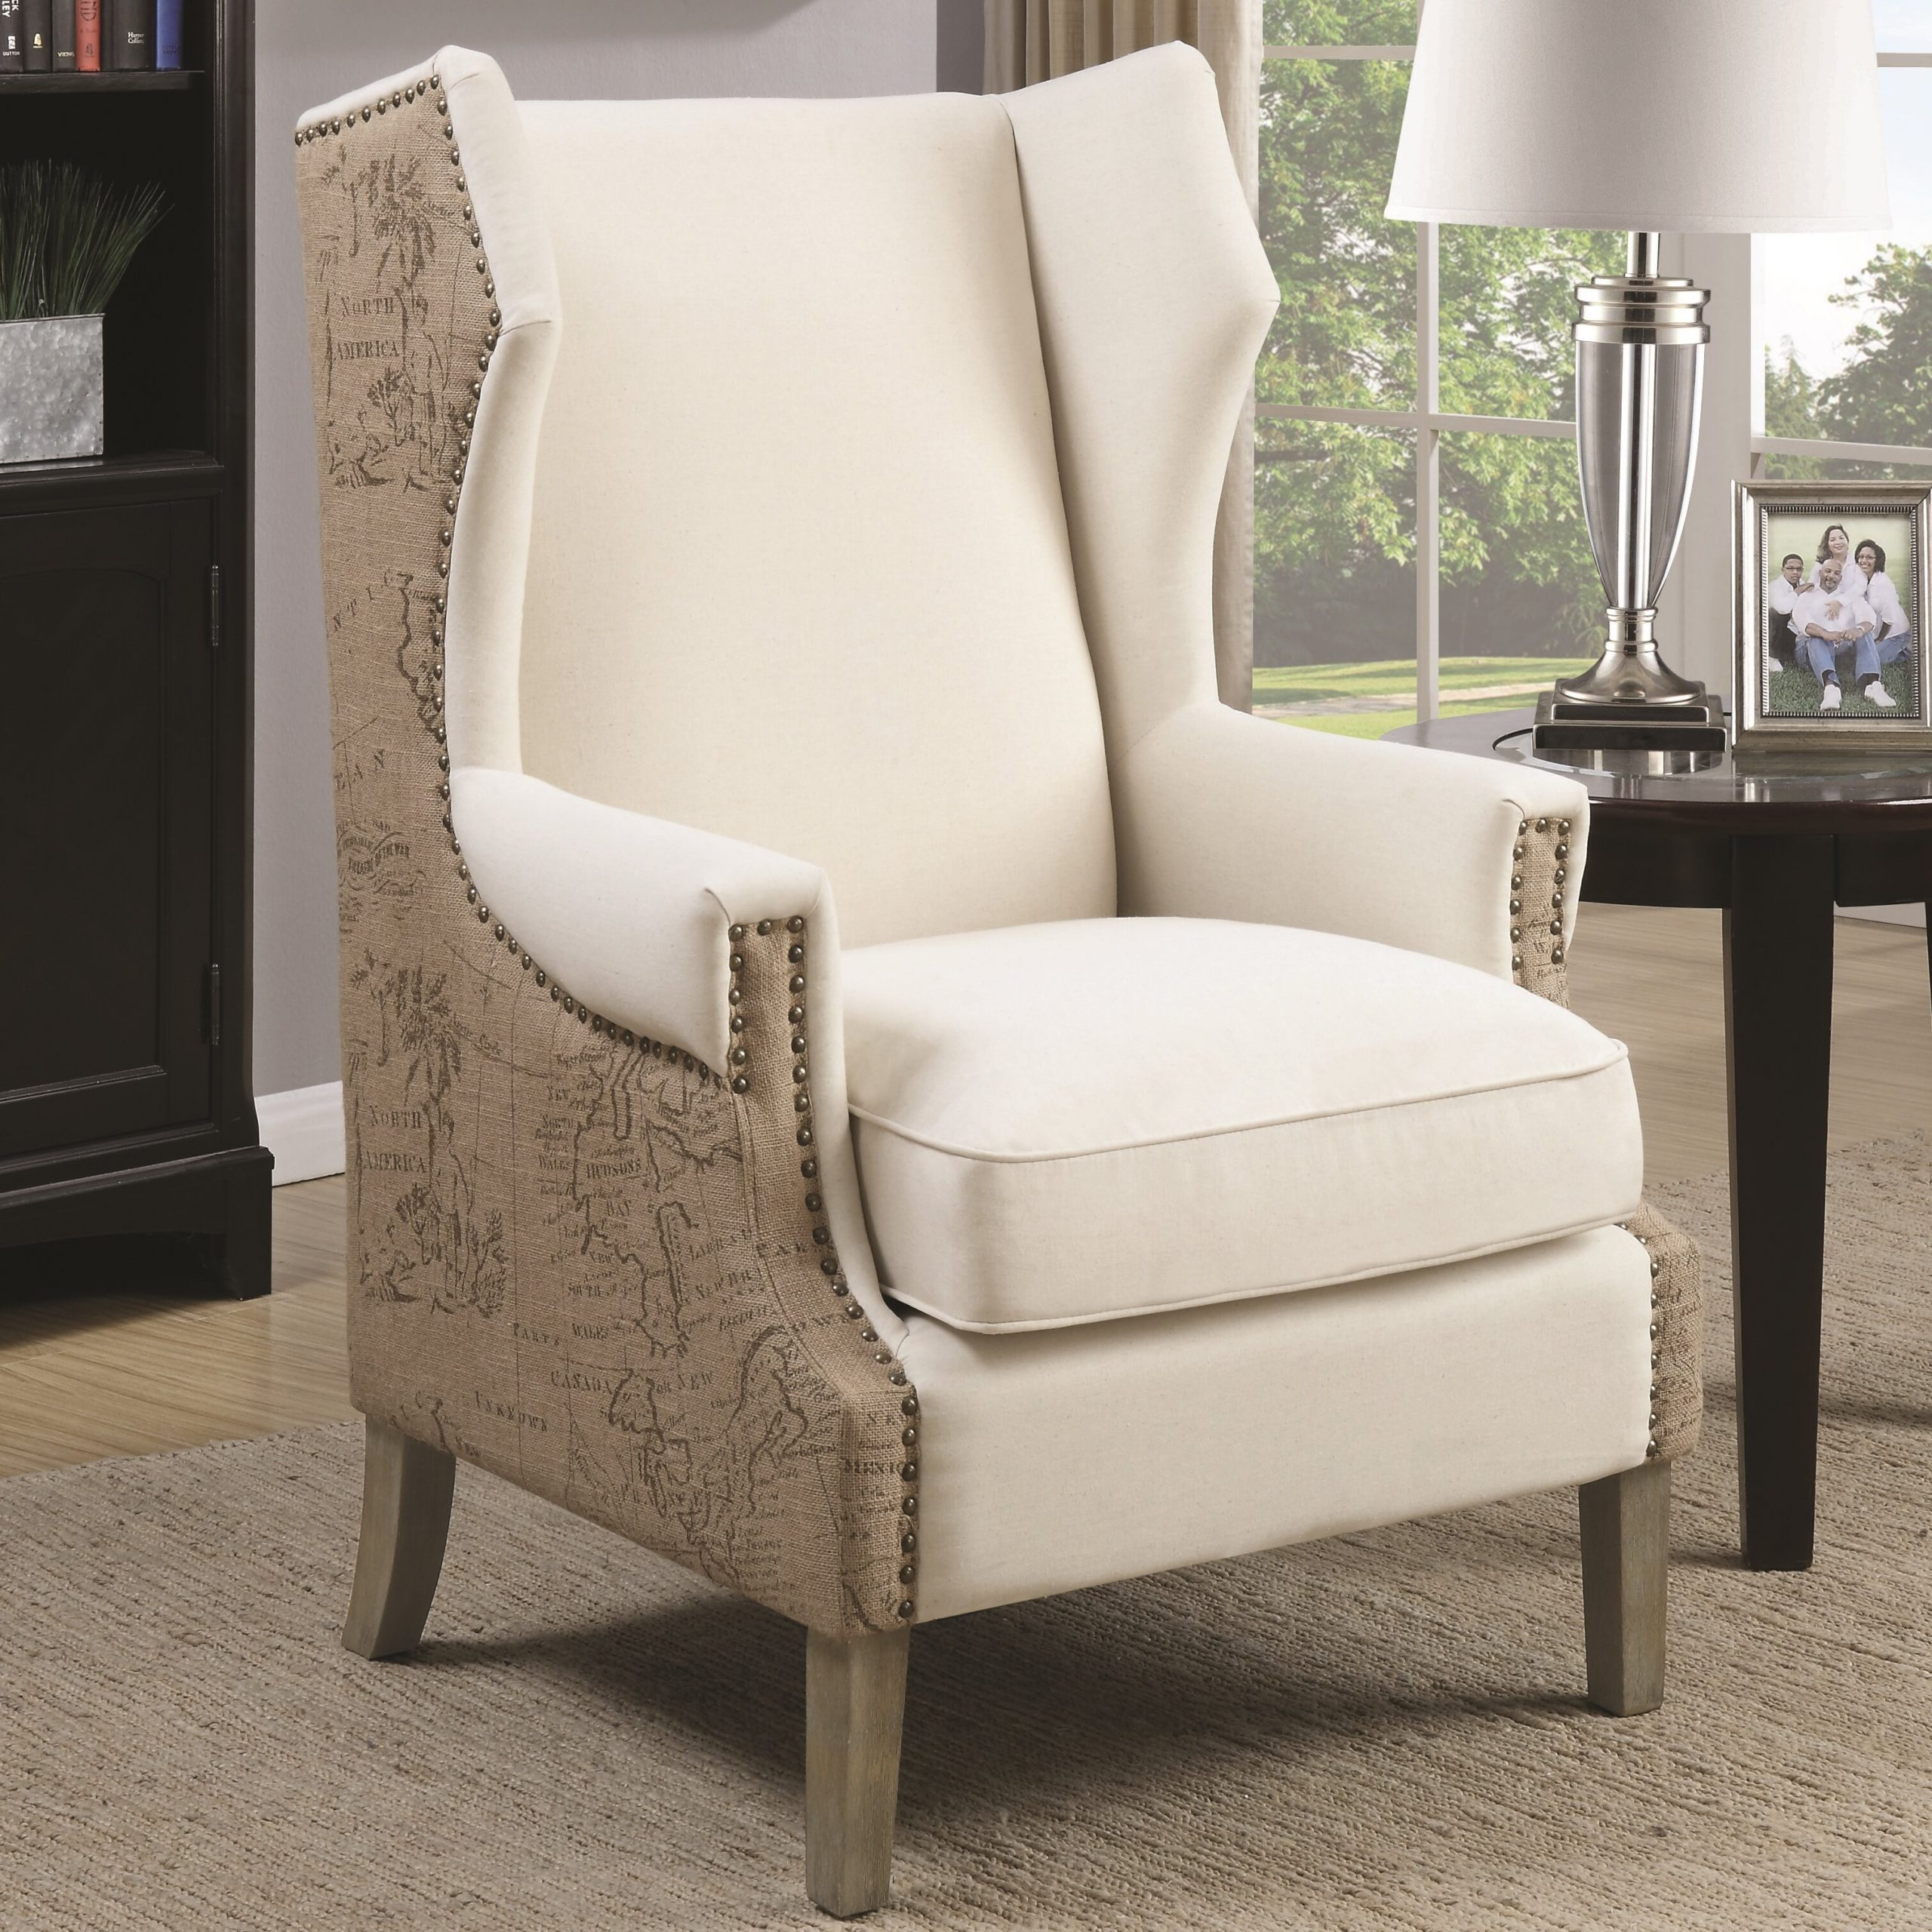 Durrant Wingback Chair With Busti Wingback Chairs (View 8 of 15)